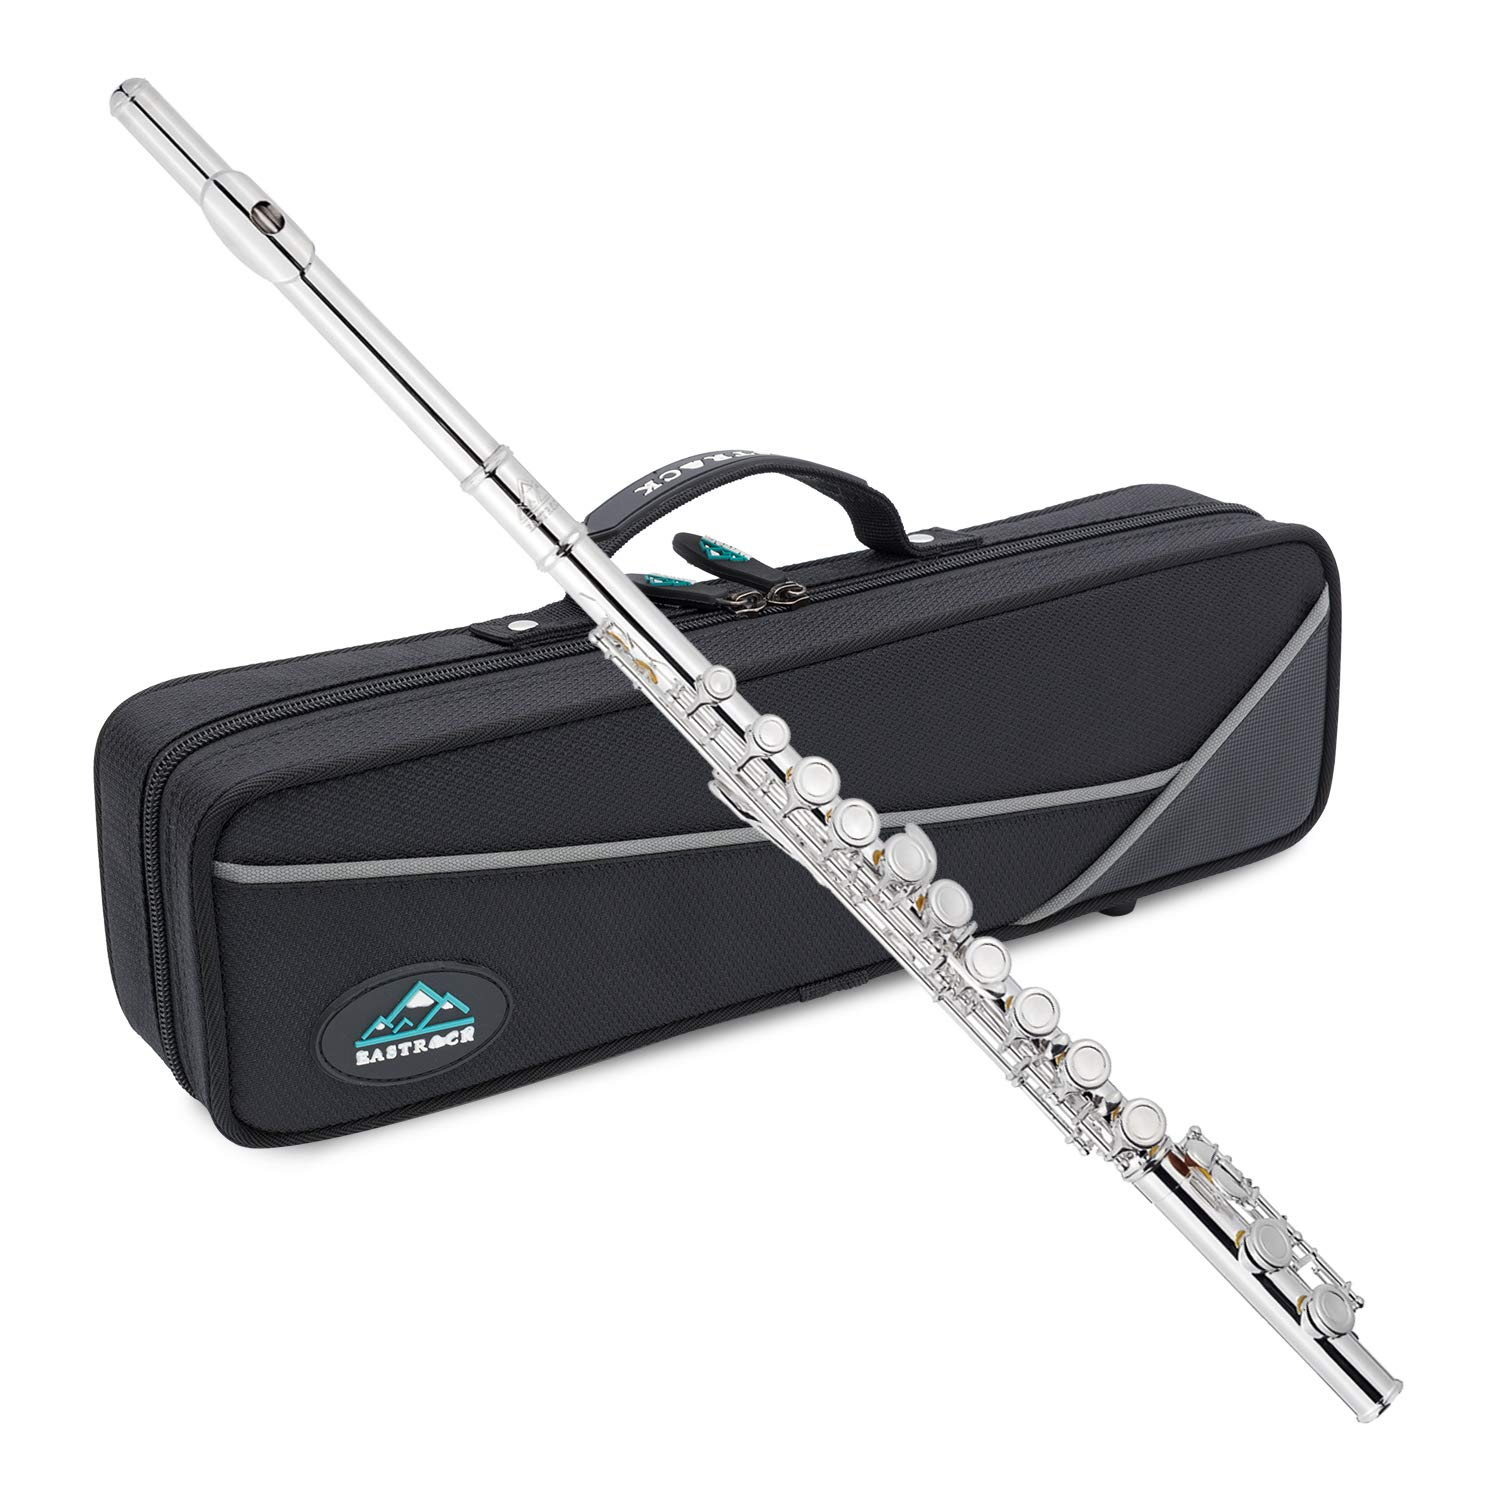 EastRock Closed Hole Flutes C 16 Key for Beginner, Kids, Student Nickel Flute with Case Stand and Cleaning kit by EastRock